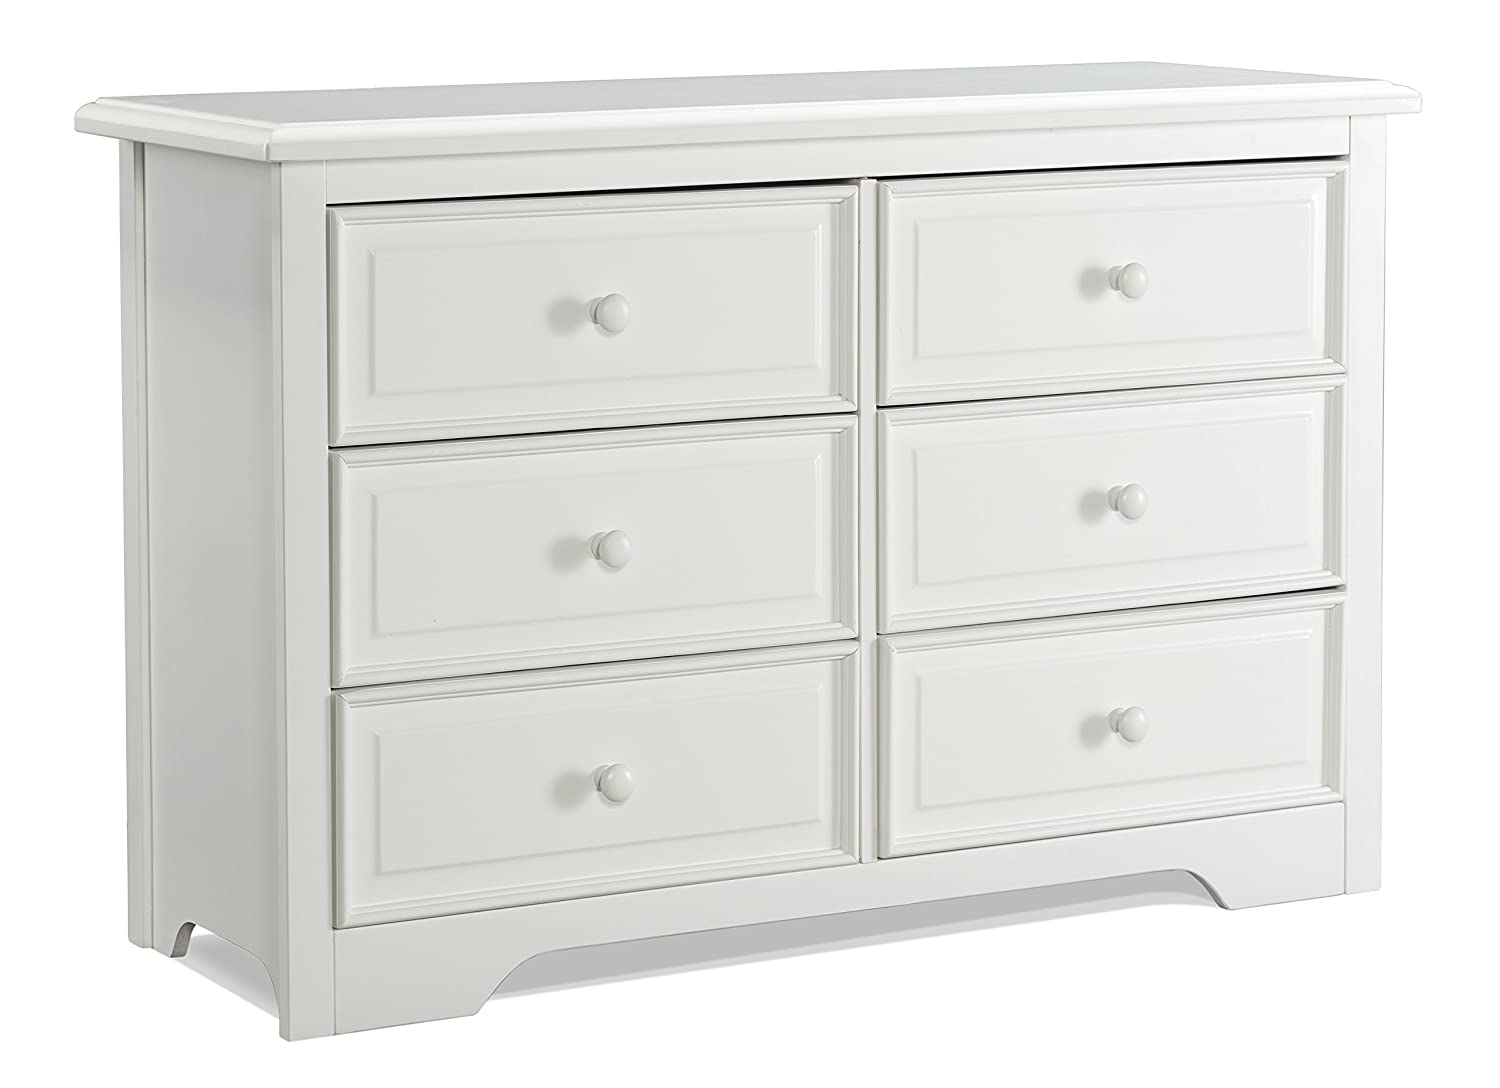 Graco Brooklyn 6 Drawer Double Dresser, Pebble Gray, Kids Bedroom Dresser with 6 Drawers, Wood & Composite Construction, Ideal for Nursery, Toddlers Room, Kids Room